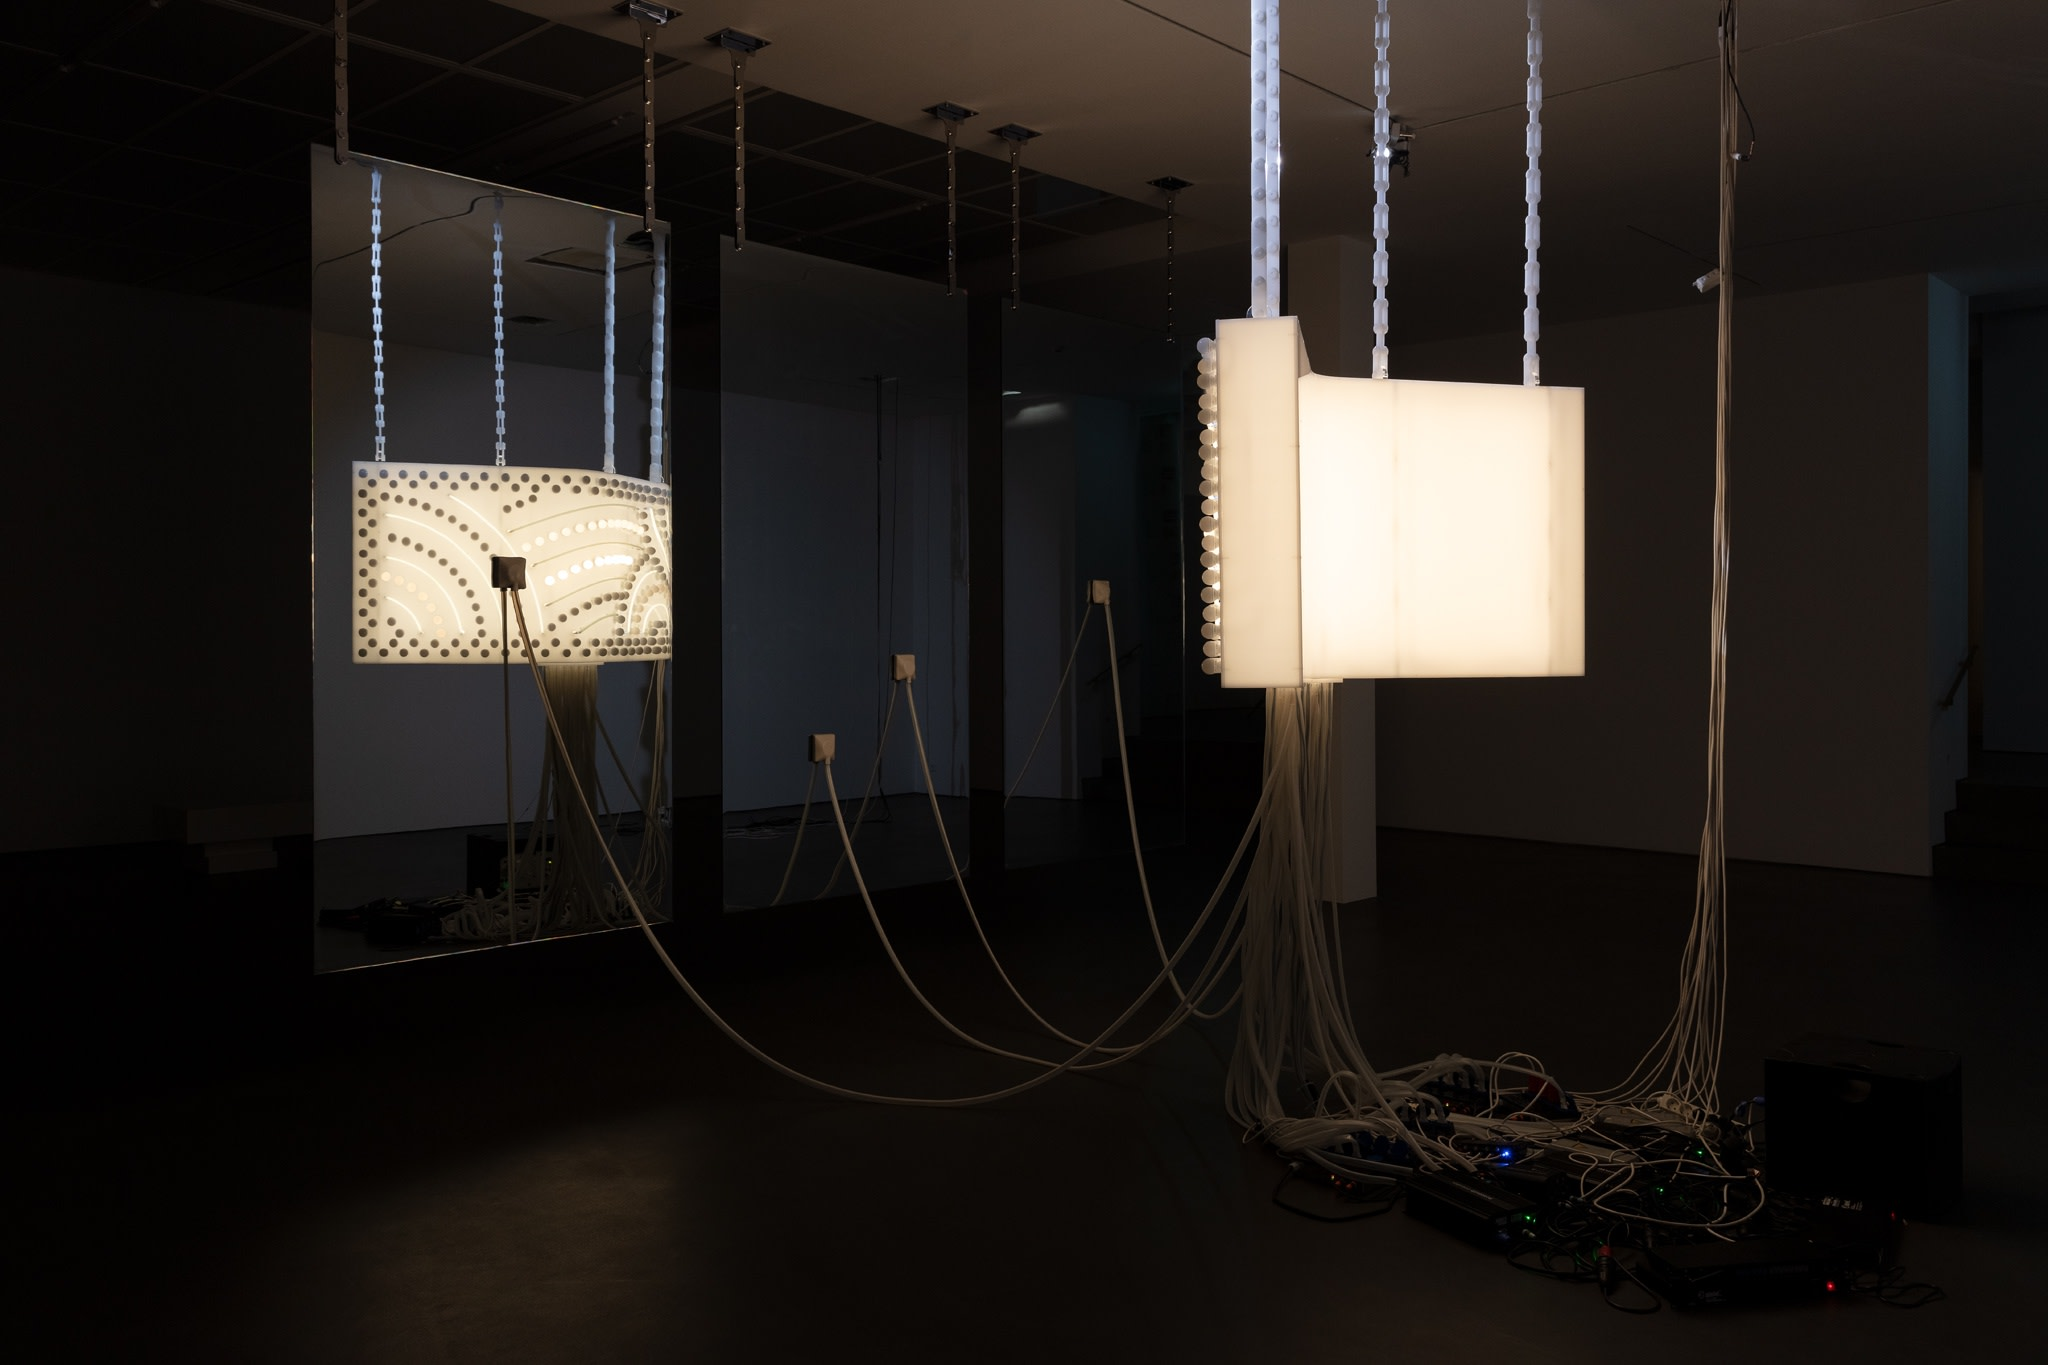 Philippe Parreno, Marquee, 2020, semi-opaque white Plexiglas, 231 light bulbs, 12 neon tubes (ø 14 mm), 46 m LED tape, DMX recorder, dimmers, transducers, light and sound program, acrylic chains, glass panels: two-way mirror, security glass, polished stainless steel chains, installation dimensions variable. Photo © Andrea Rossetti